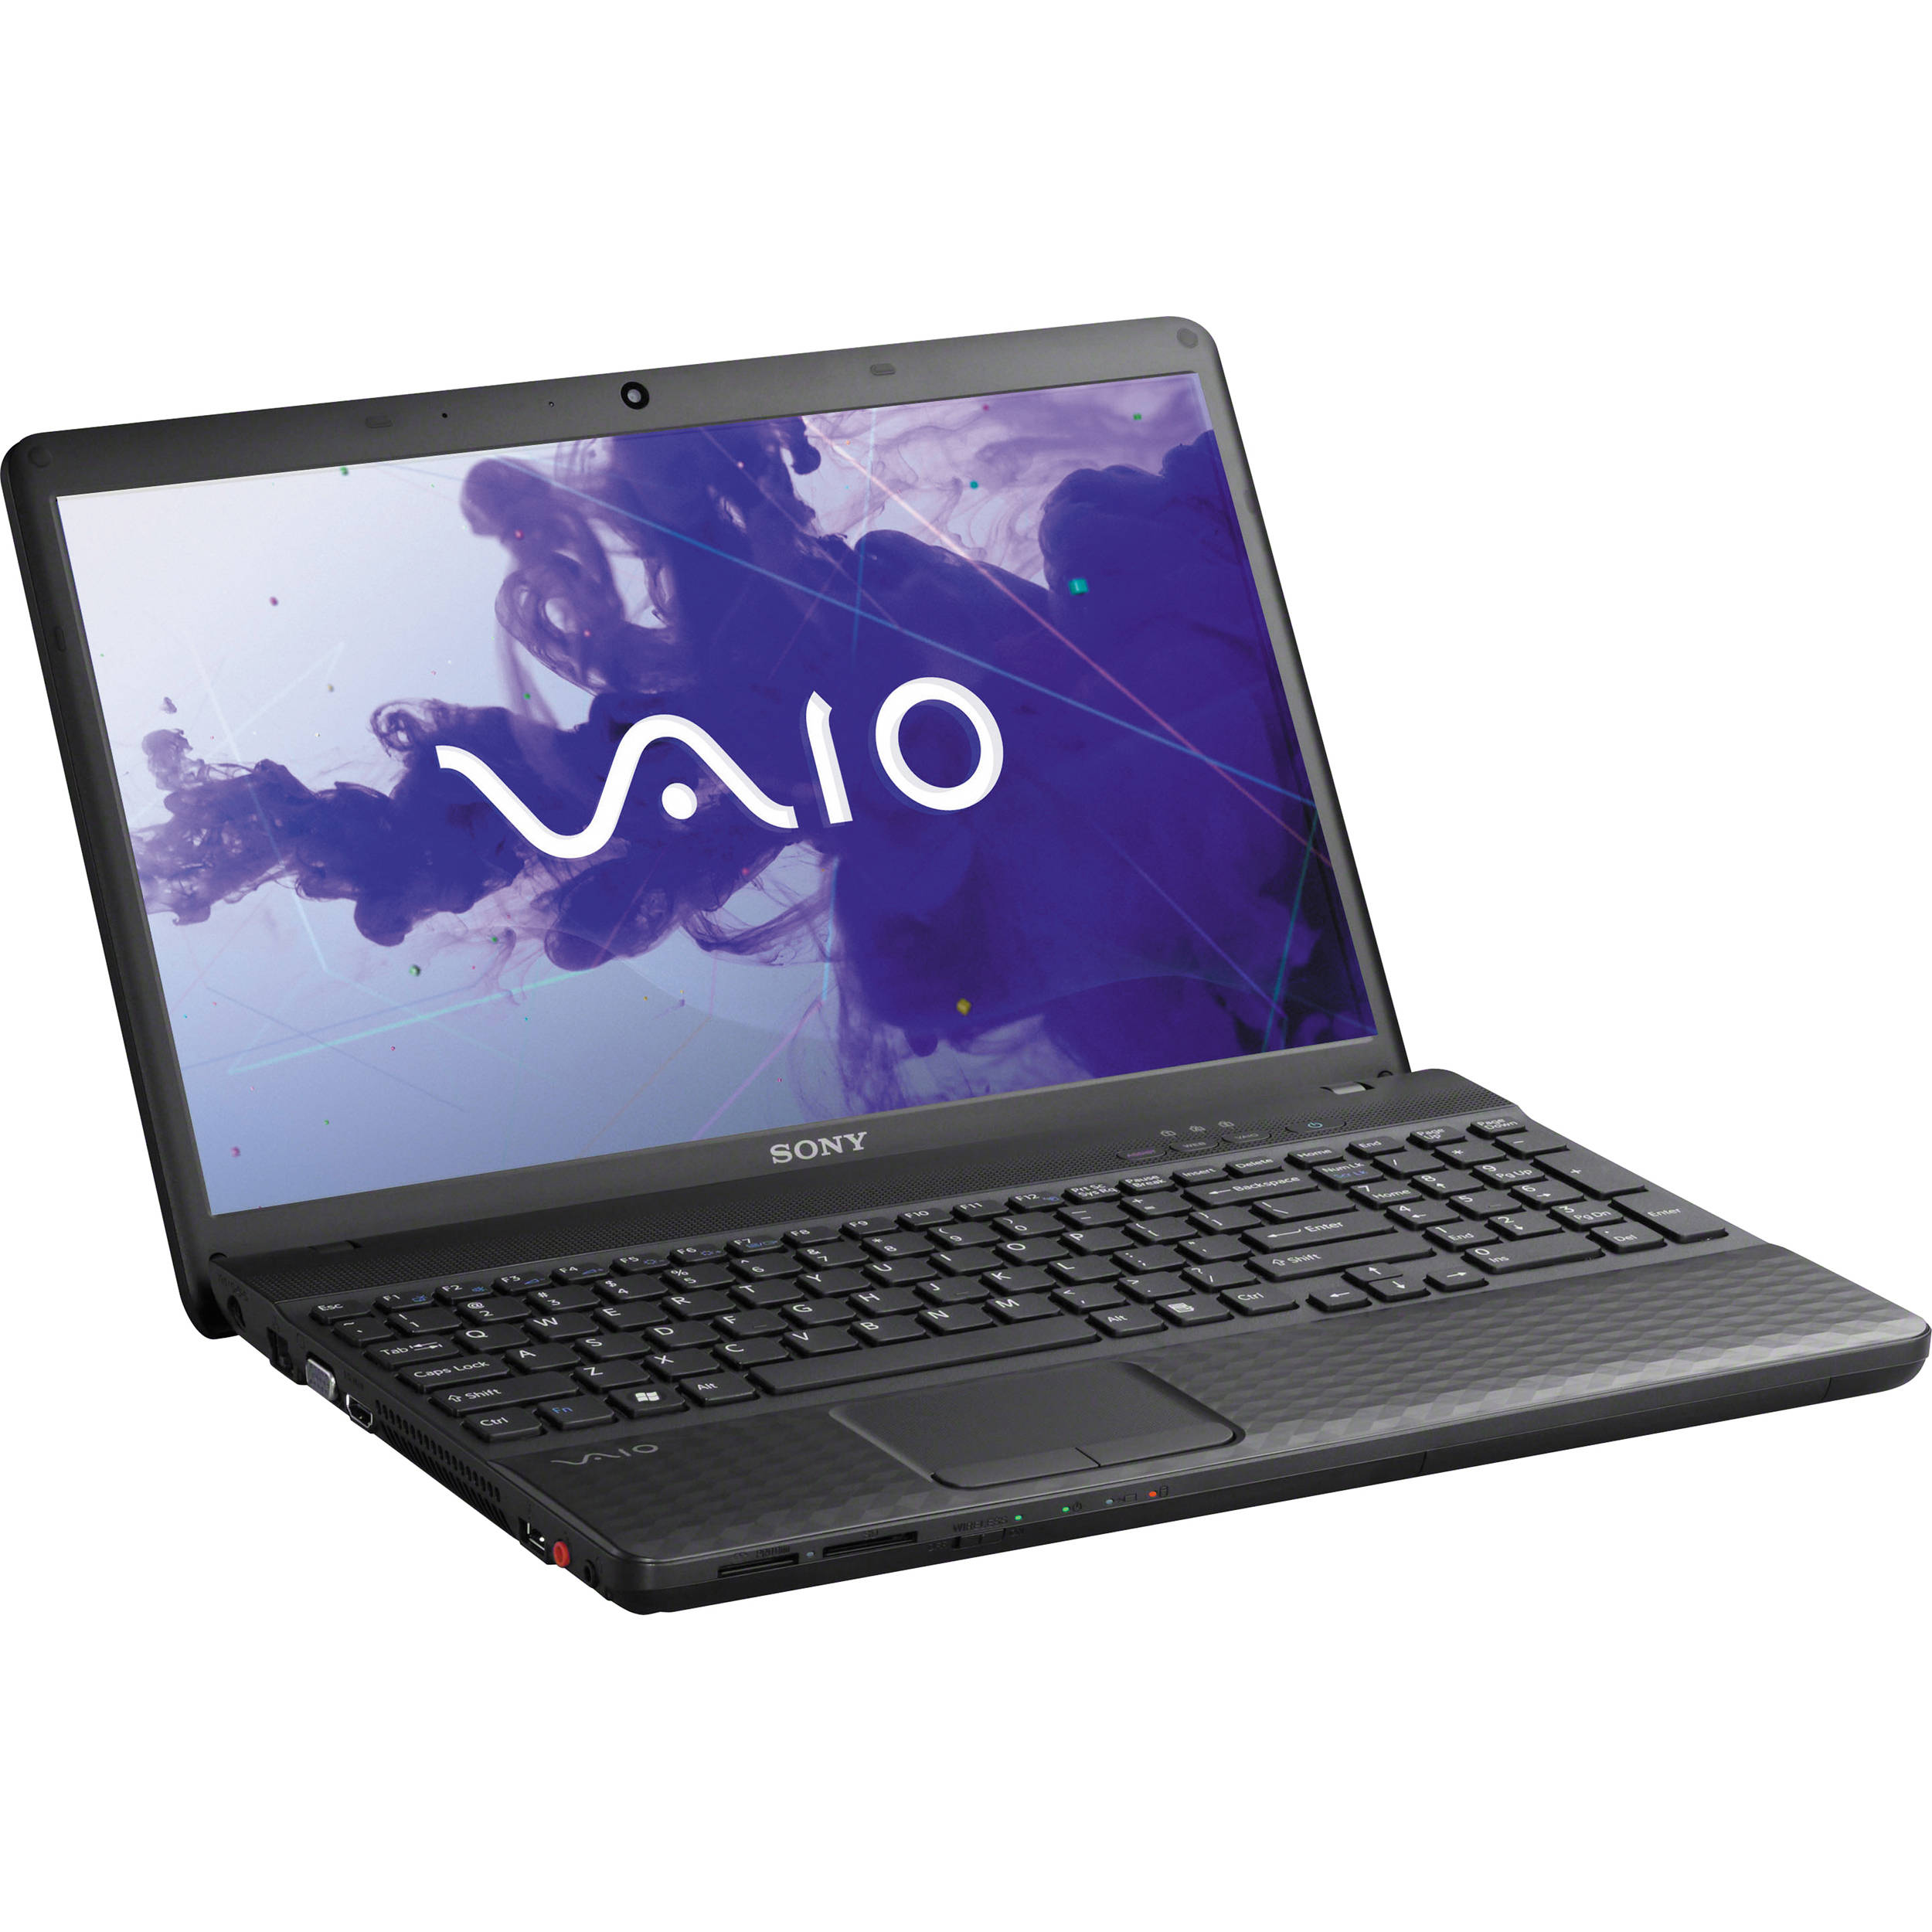 Sony Vaio VPCEH2DFX/B Shared Library Driver for Windows